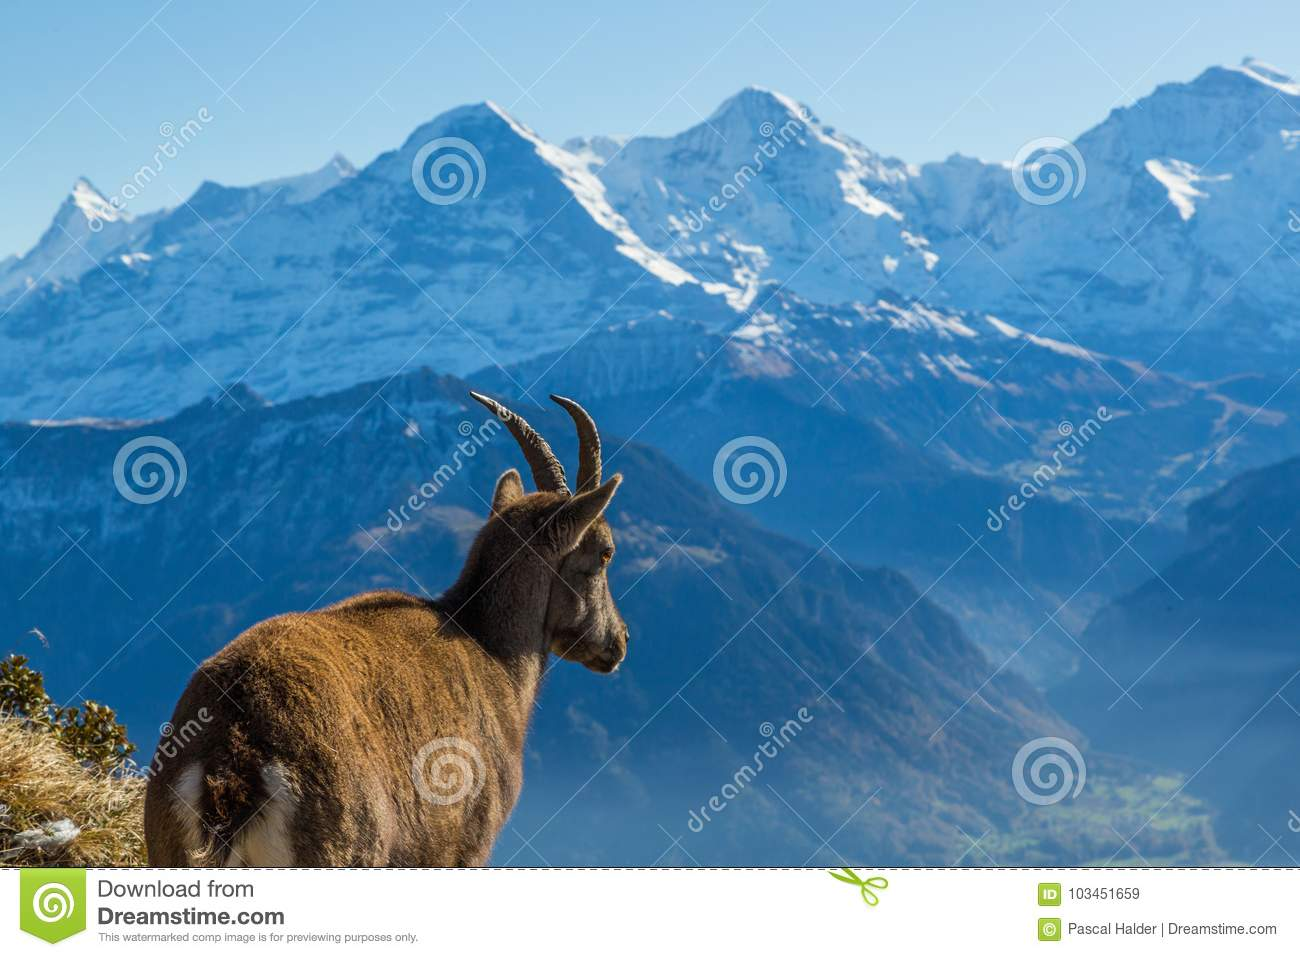 natural female alpine ibex capricorn looking at Eiger, Monch, Jungfrau in bernese alps